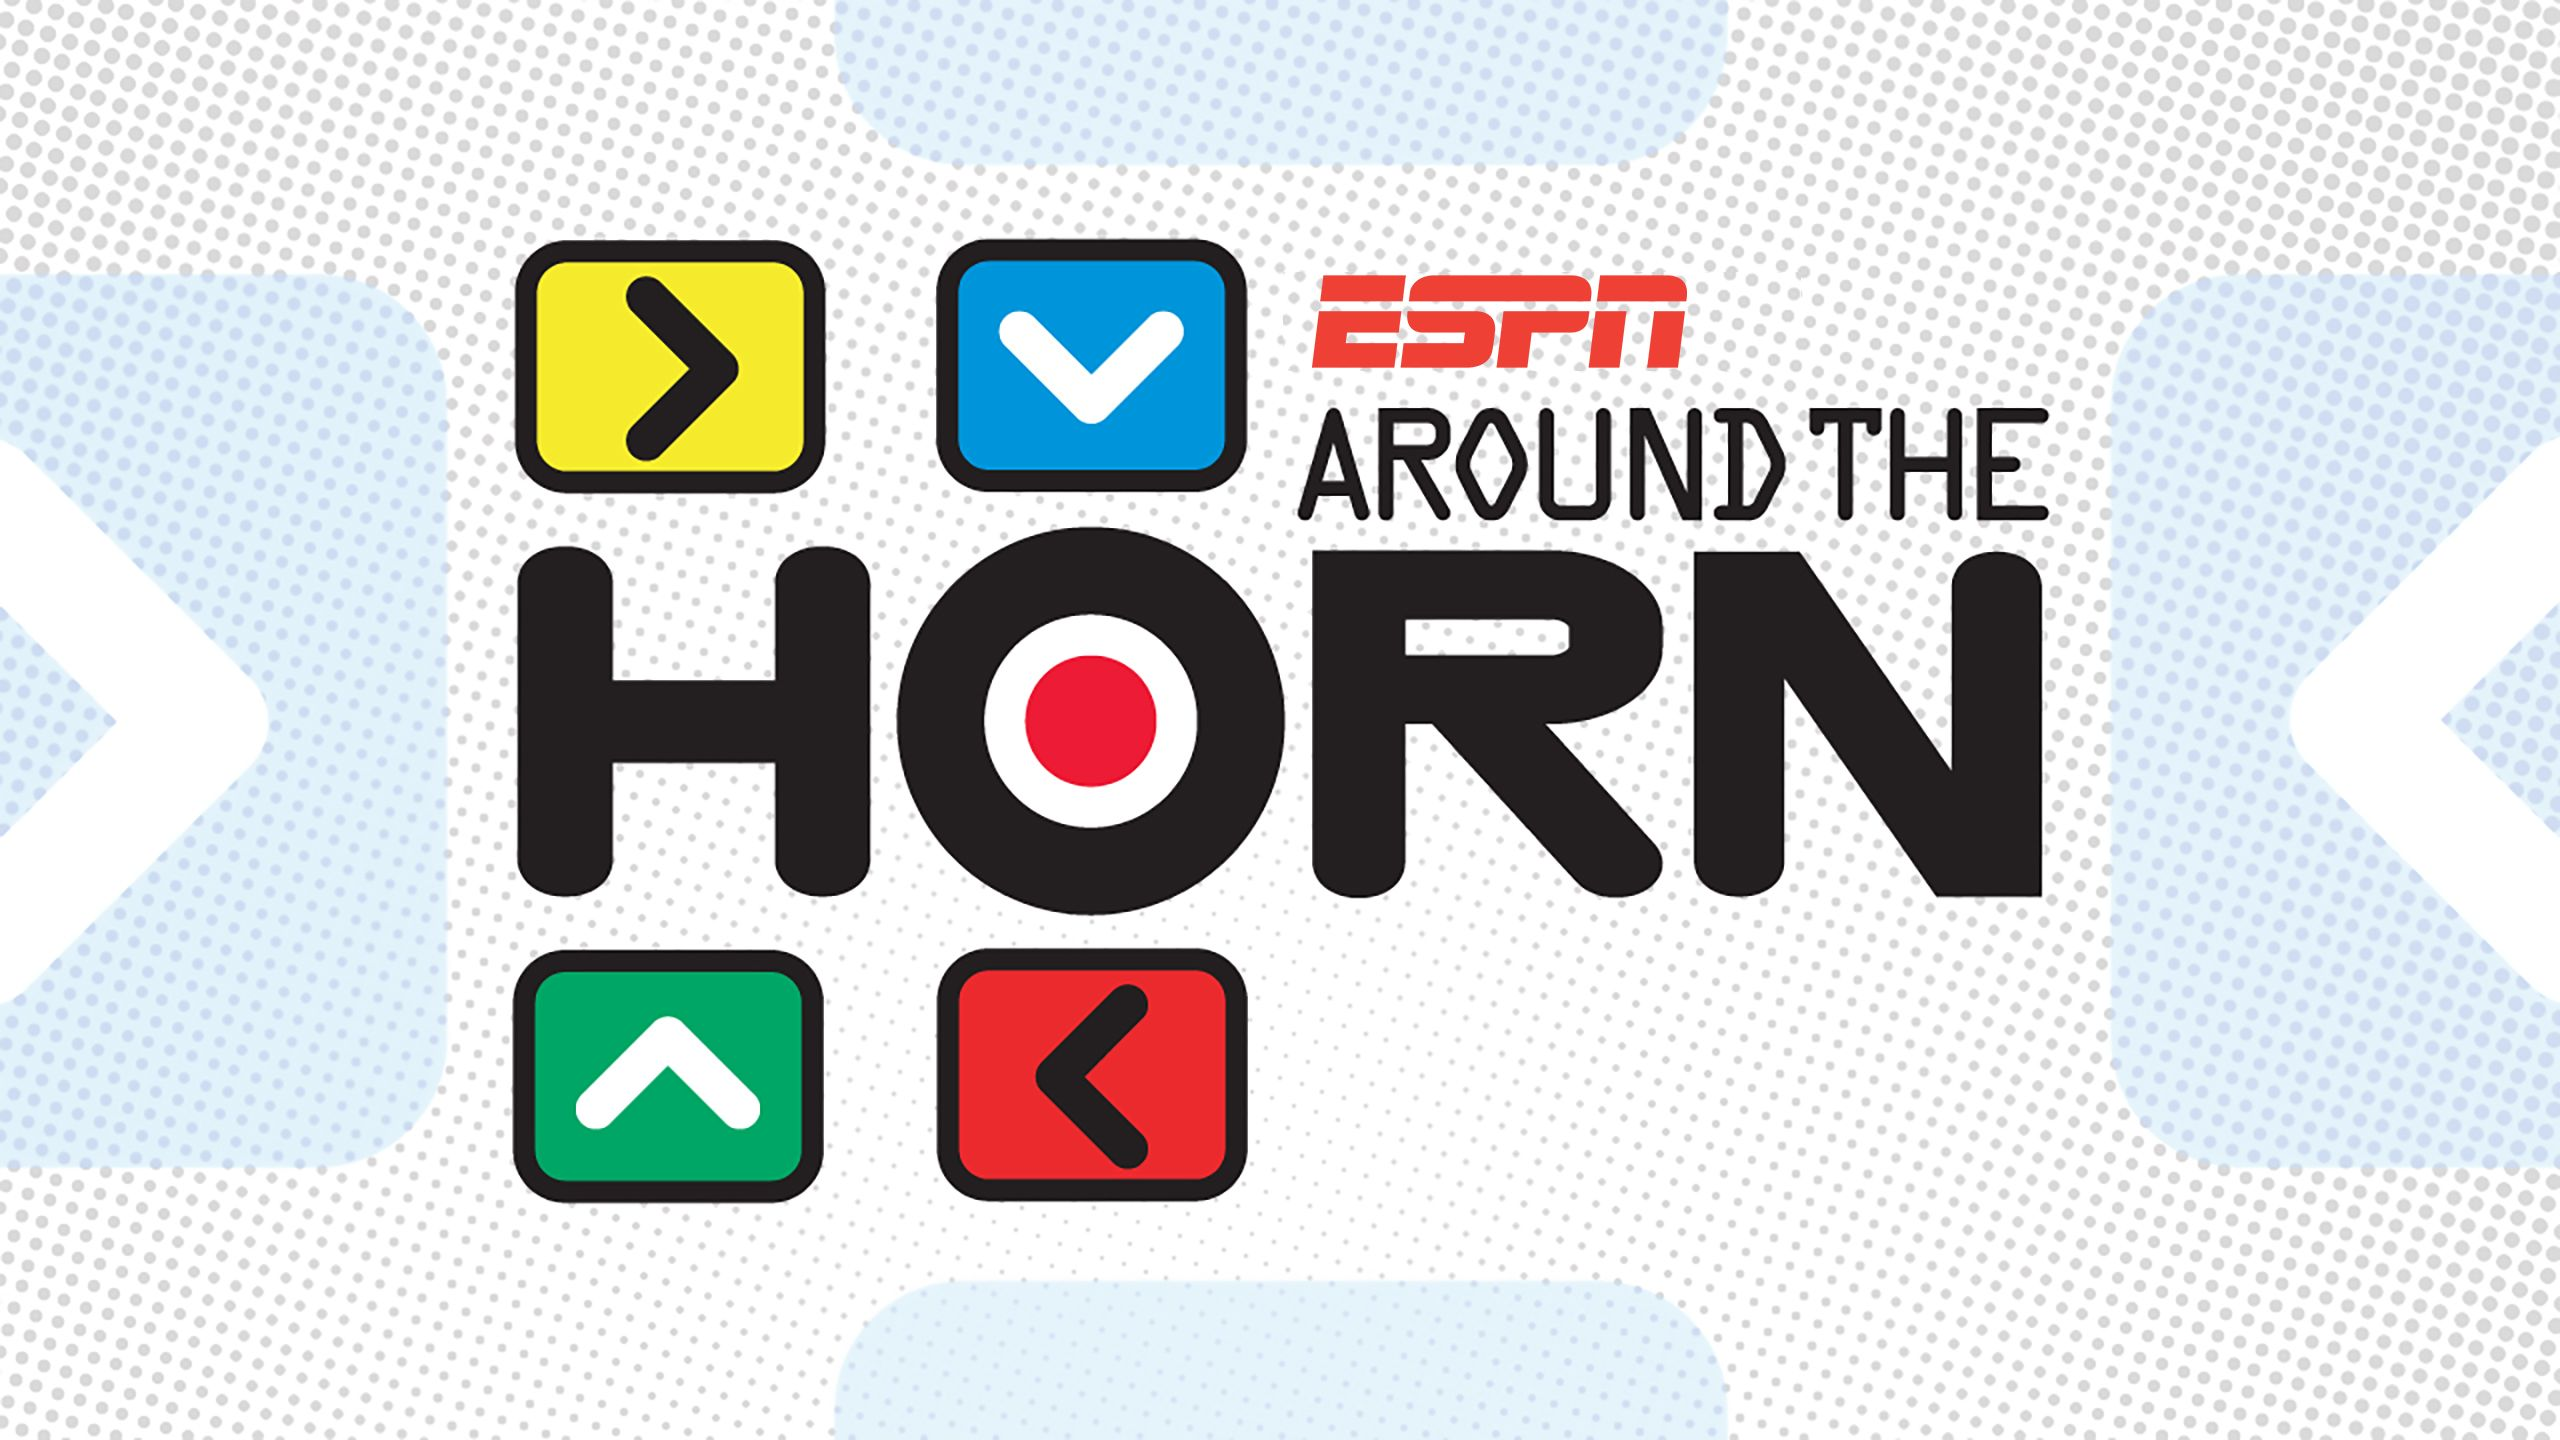 Thu, 6/21 - Around The Horn